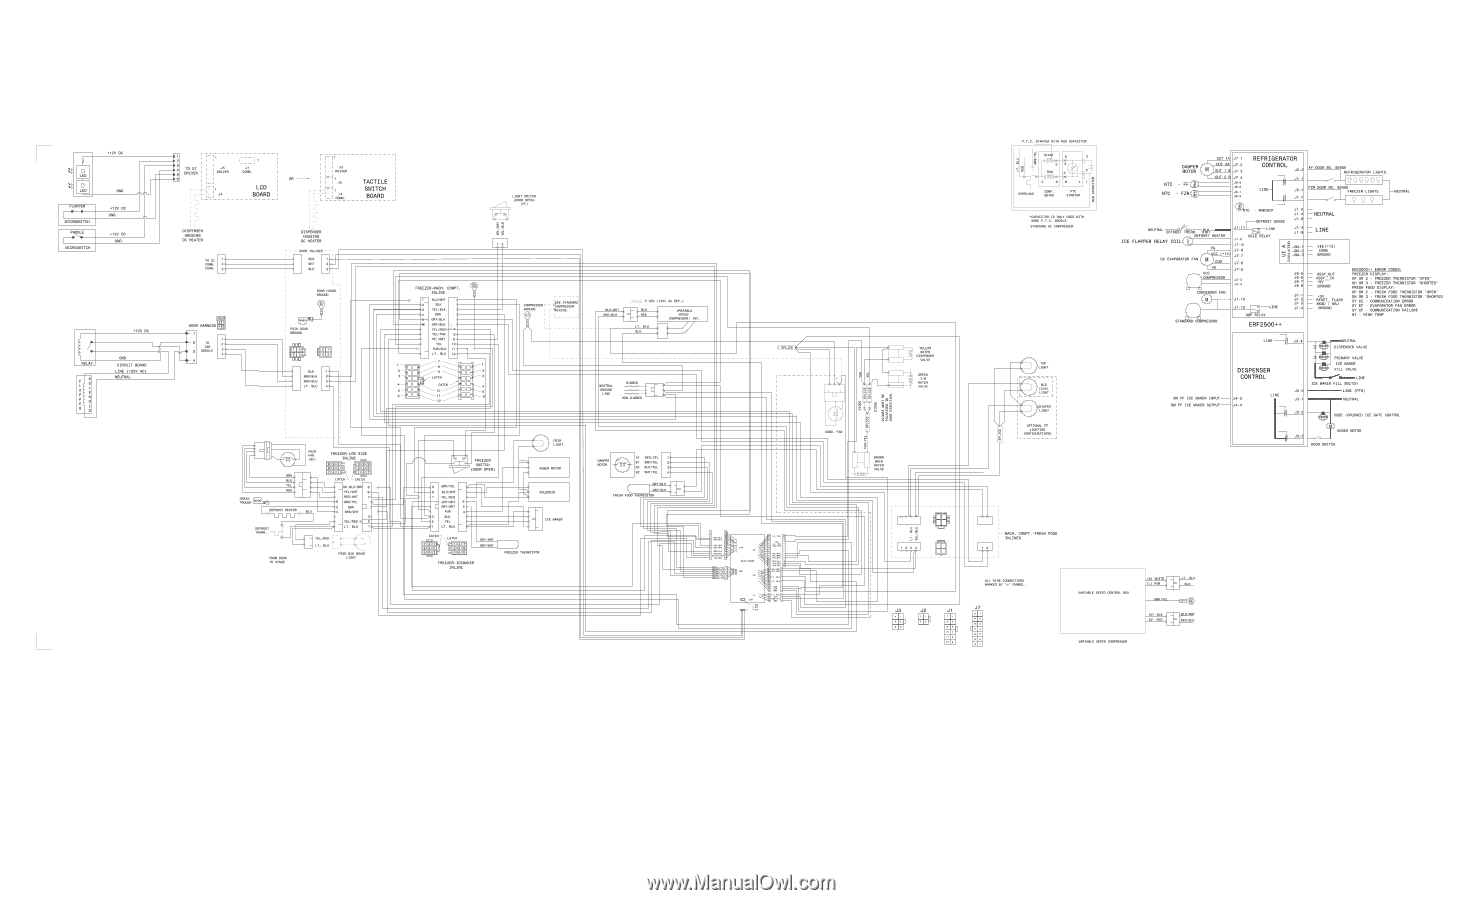 Panasonic Mini Split Wiring Diagram Html